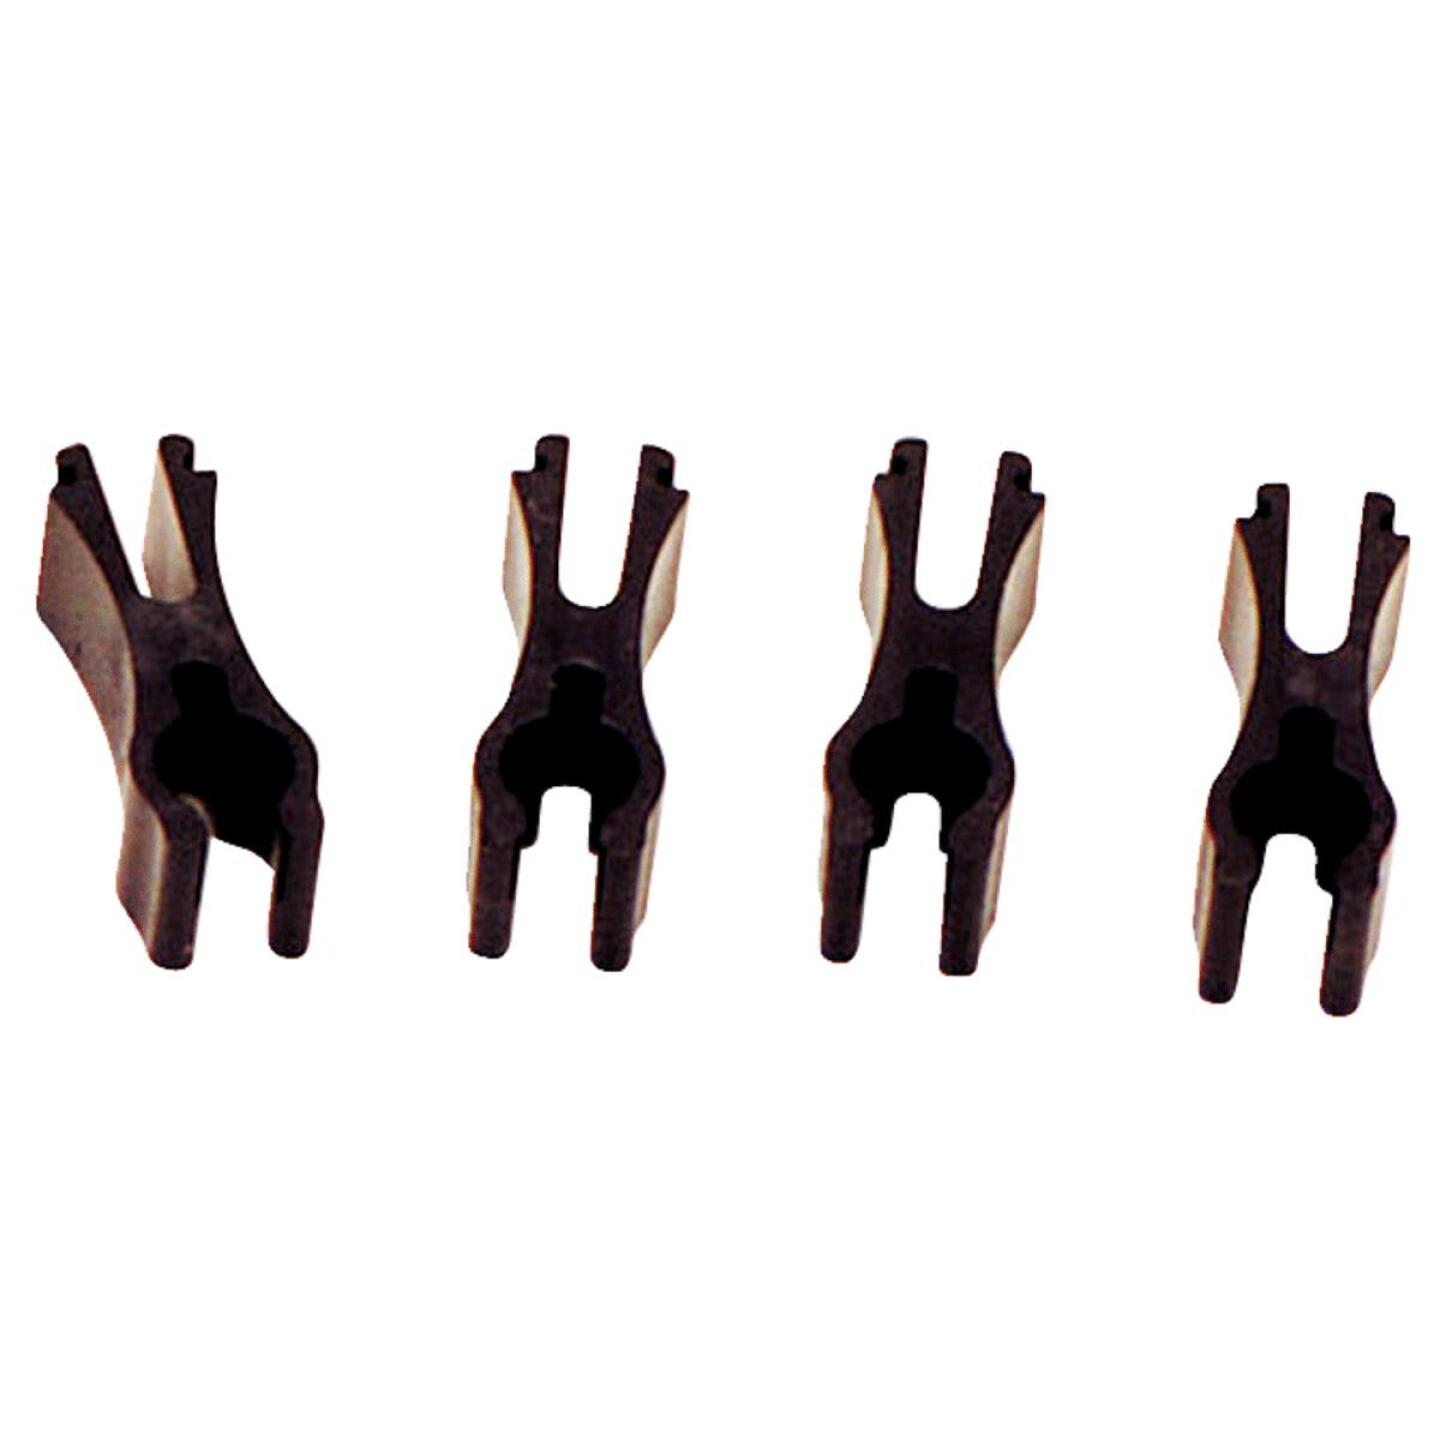 Dial Plastic Tube Retainer Clip for Arctic Circle Coolers (4-Pack)  Image 1